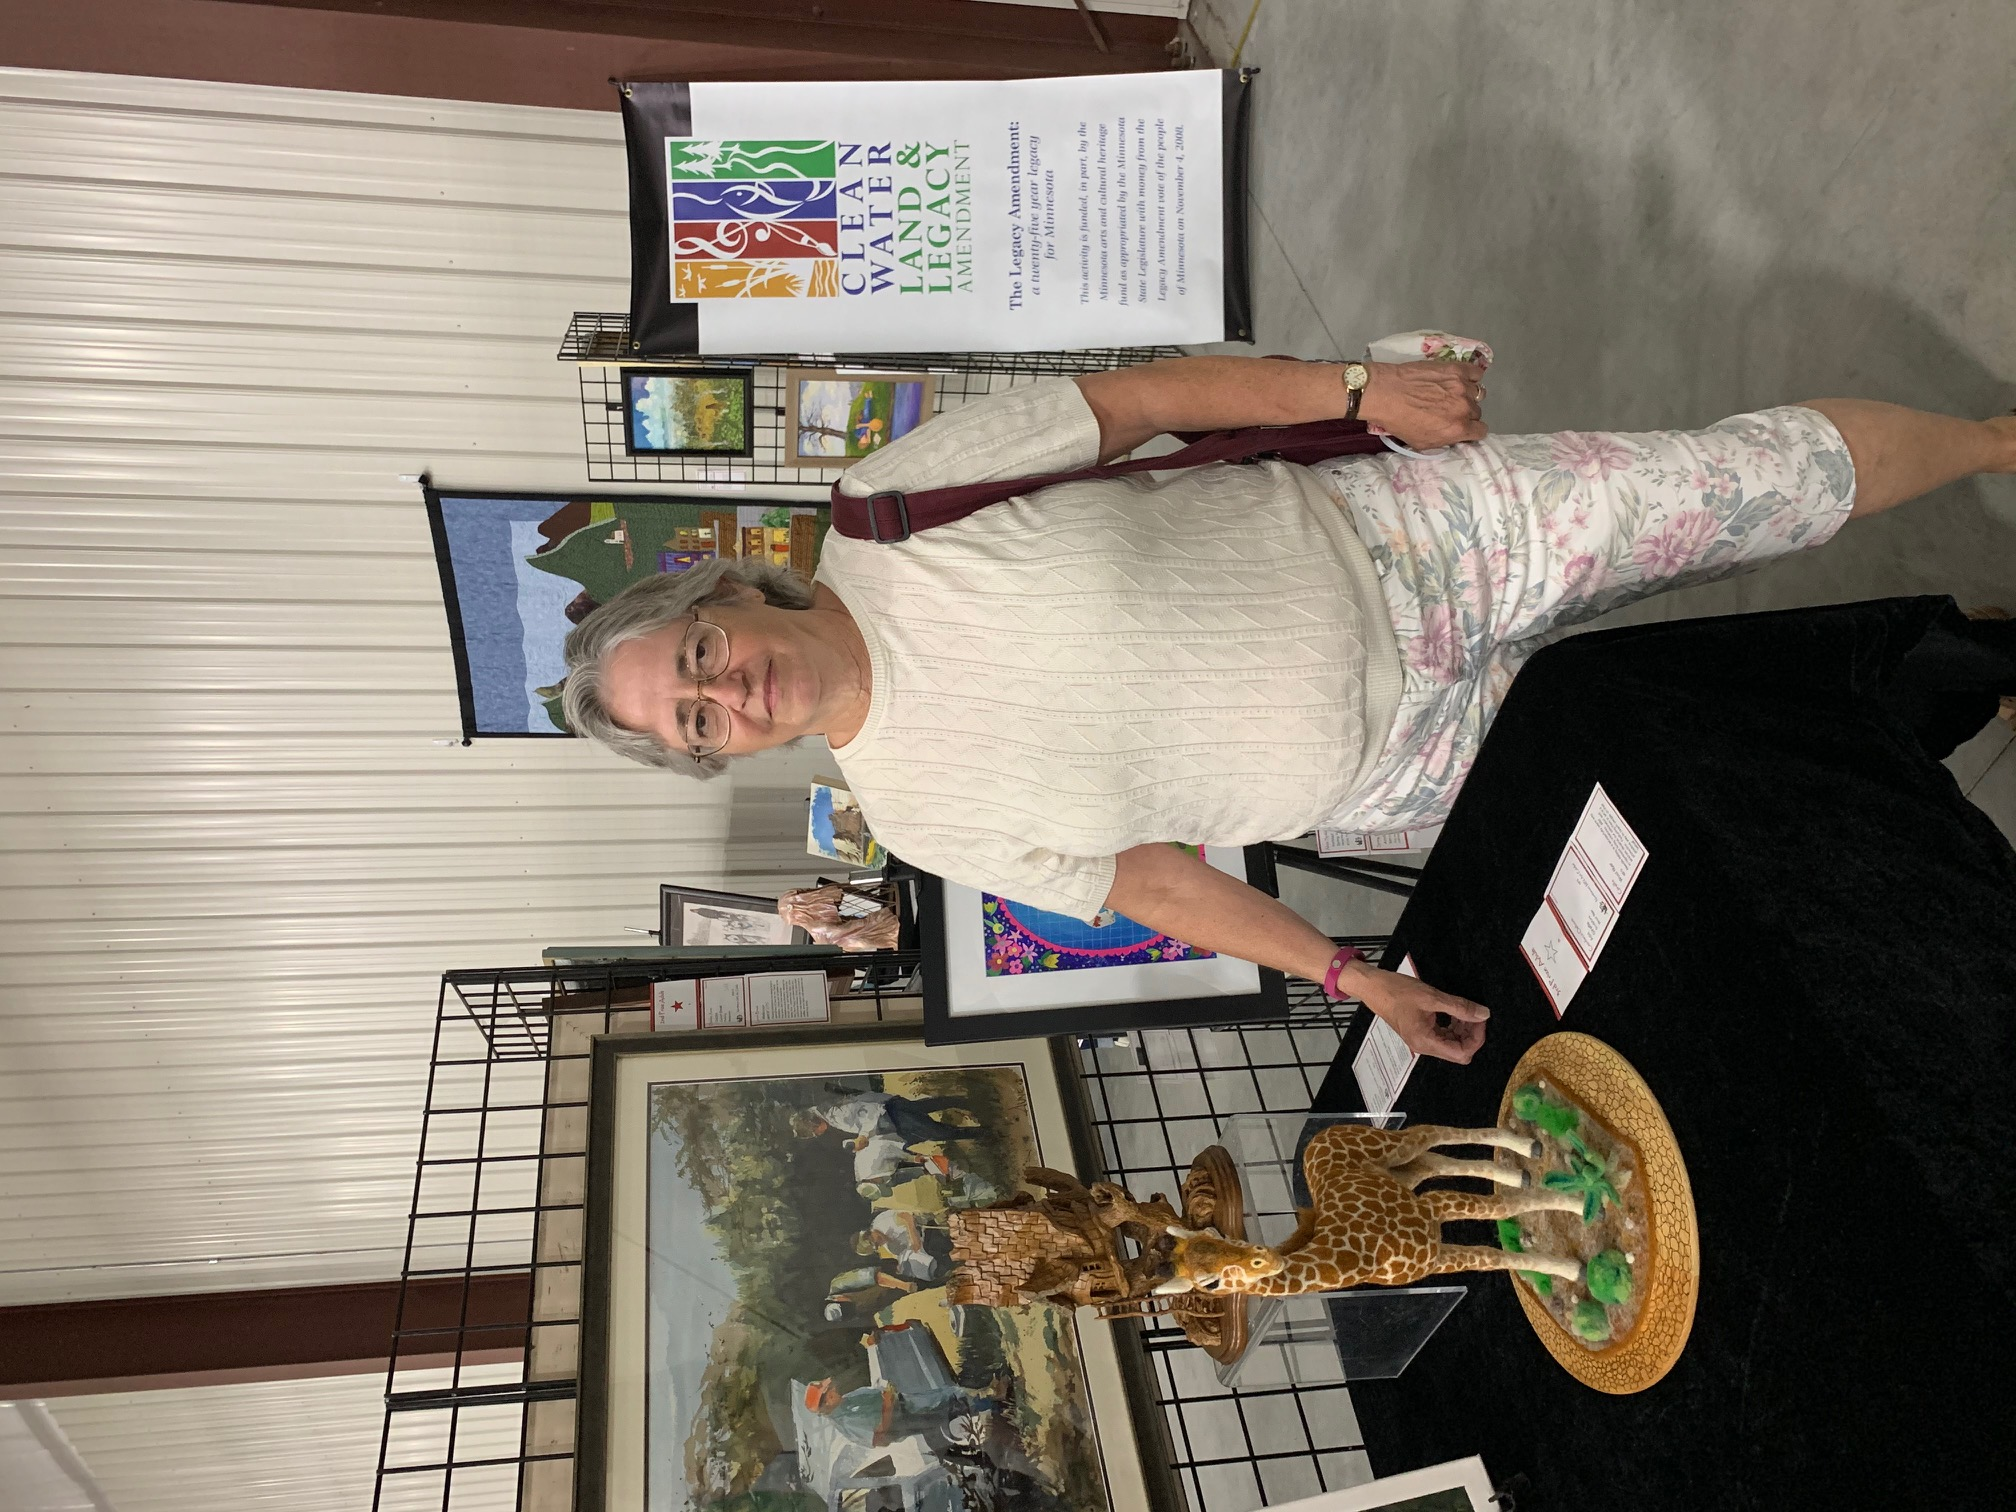 Caption: Candace Osborn of Ada, MN with her award-winning giraffe!